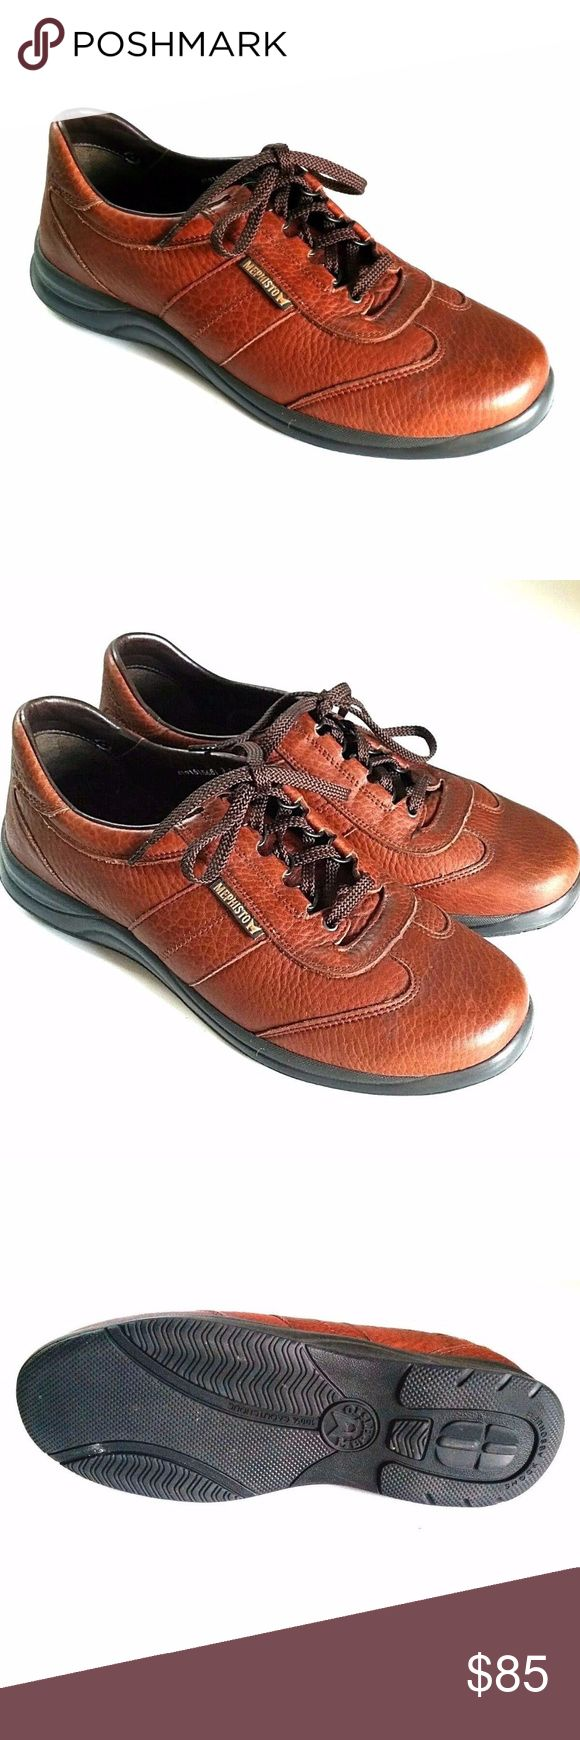 Mephisto RunOff Air-Jet Brown Leather Sneakers 9.5 Mephisto RunOff Air-Jet Brown Leather Sneakers Comfort Walking Sport Shoes.   Retail price $375+tax!  Rich brown leather  D-ring lacing and padded collar  Air Bag System soles, 100% Caoutchouc rubber  Made in Portugal, stamped: 419515681  Size: 9.5 US / 9 EU  No significant wear, tear, scratches or other damage. EXCELLENT condition! Please refer to pictures. Mephisto Shoes Sneakers